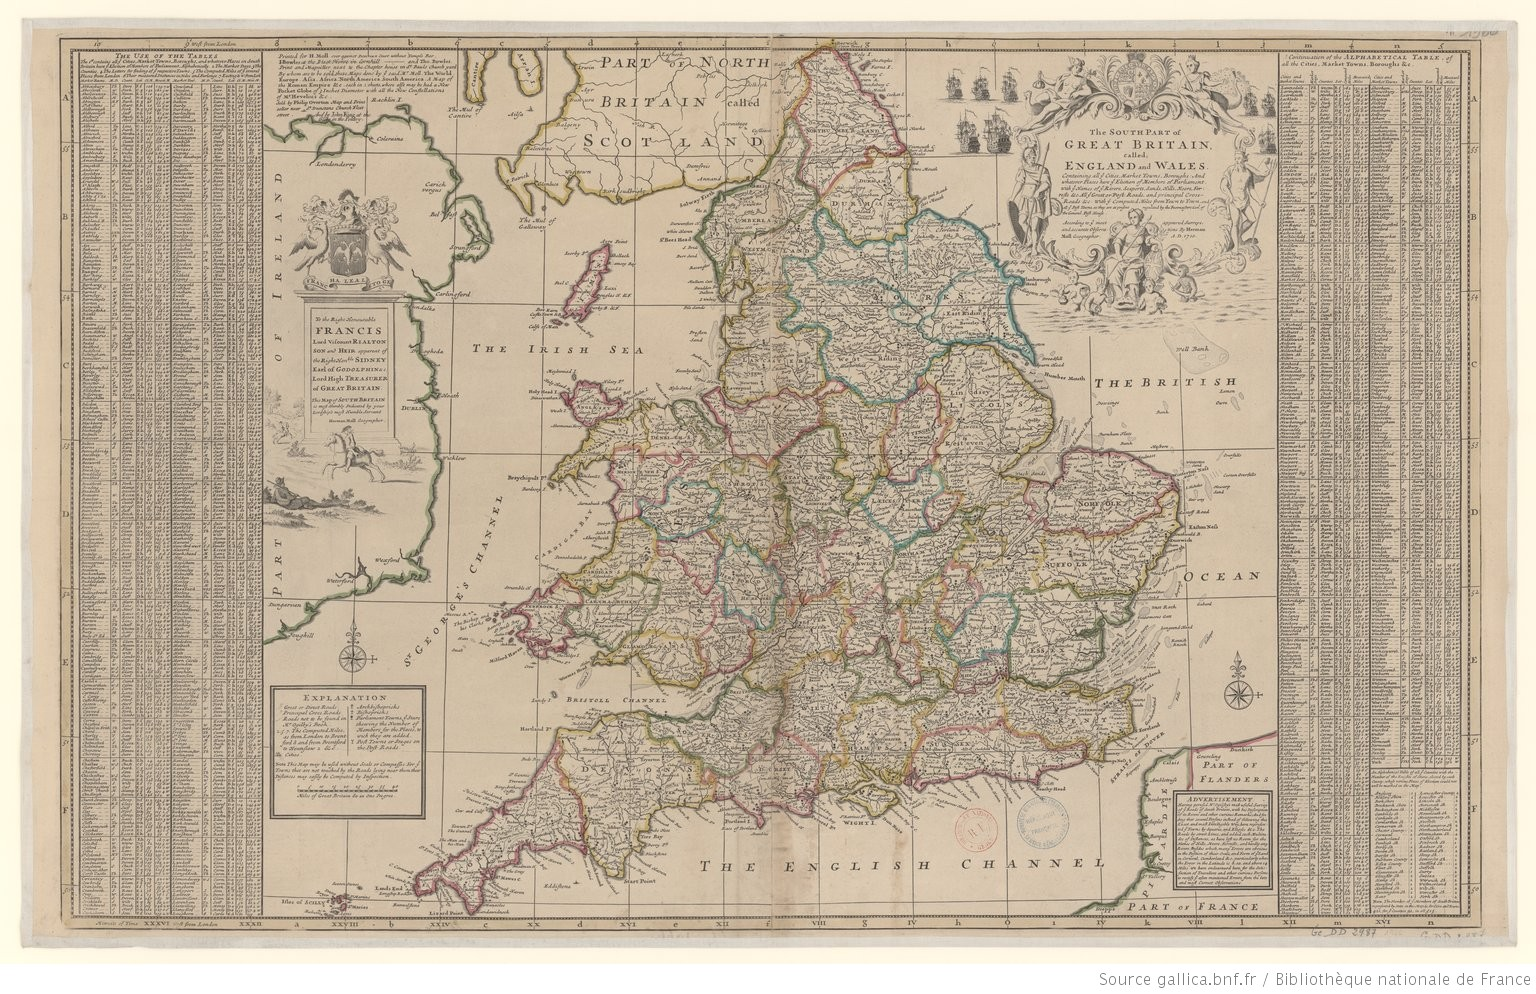 The South Part of Great Britain, called England and Wales